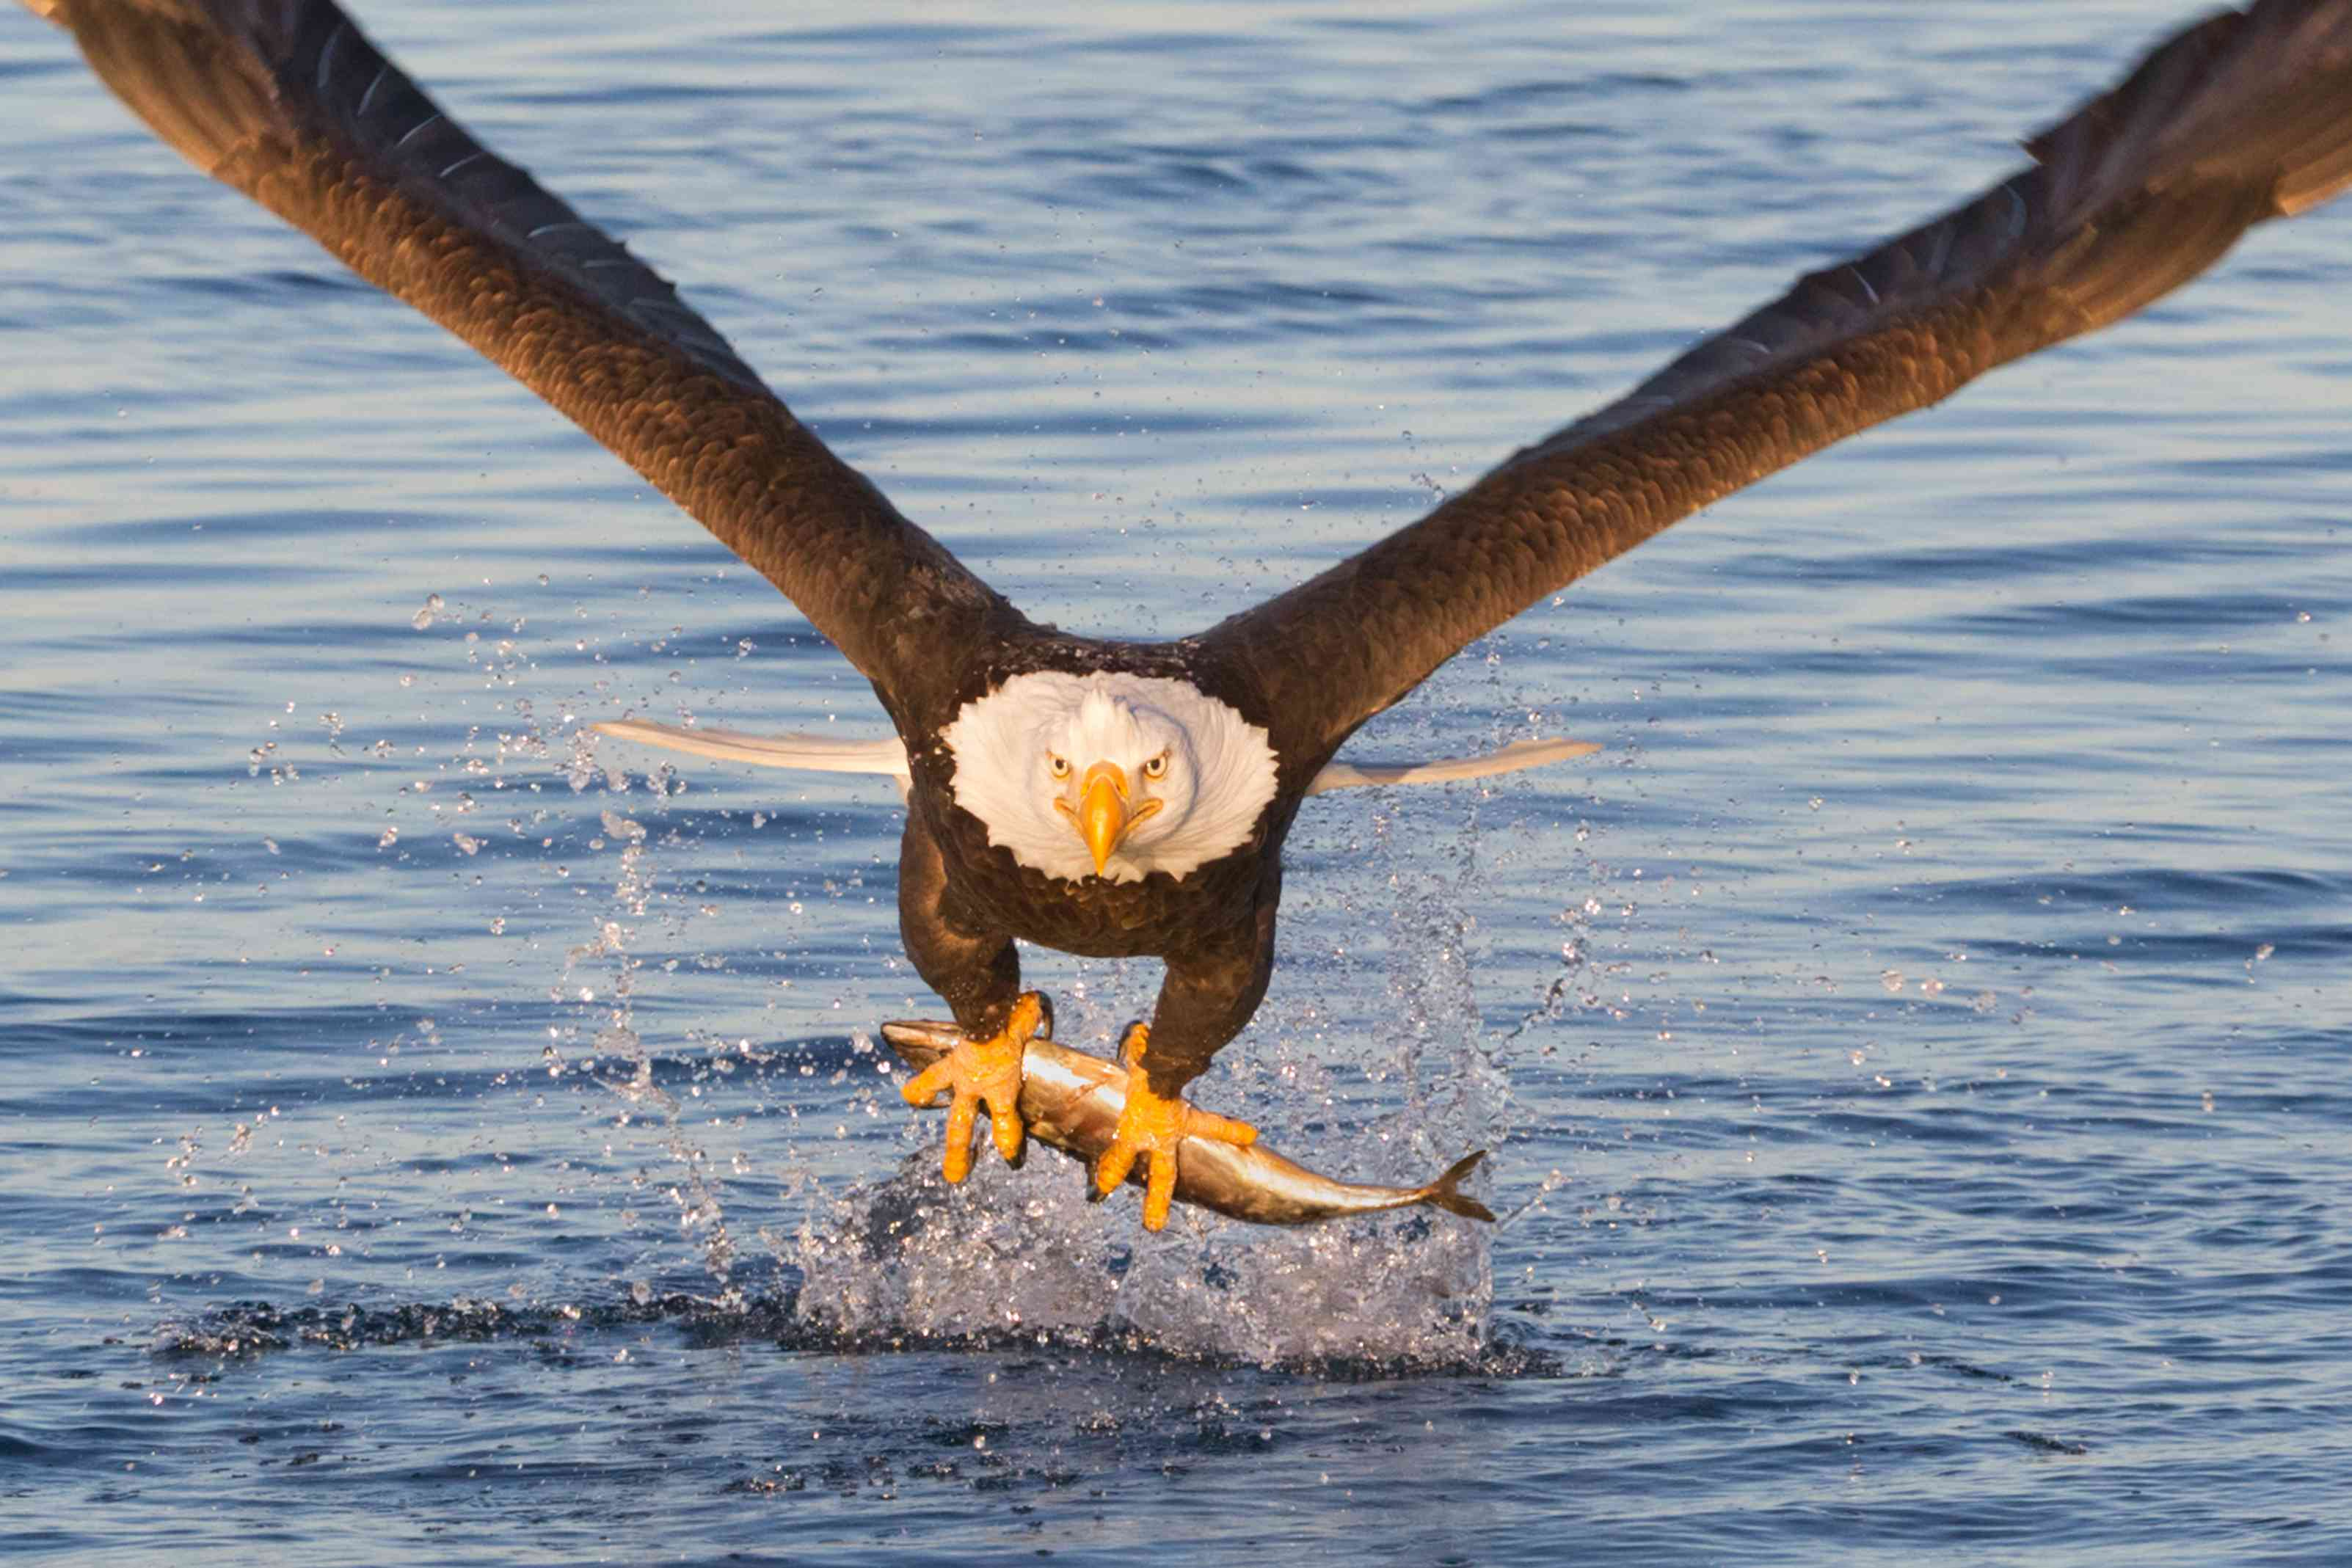 A bald eagle flies low over water with a fish in its talons.